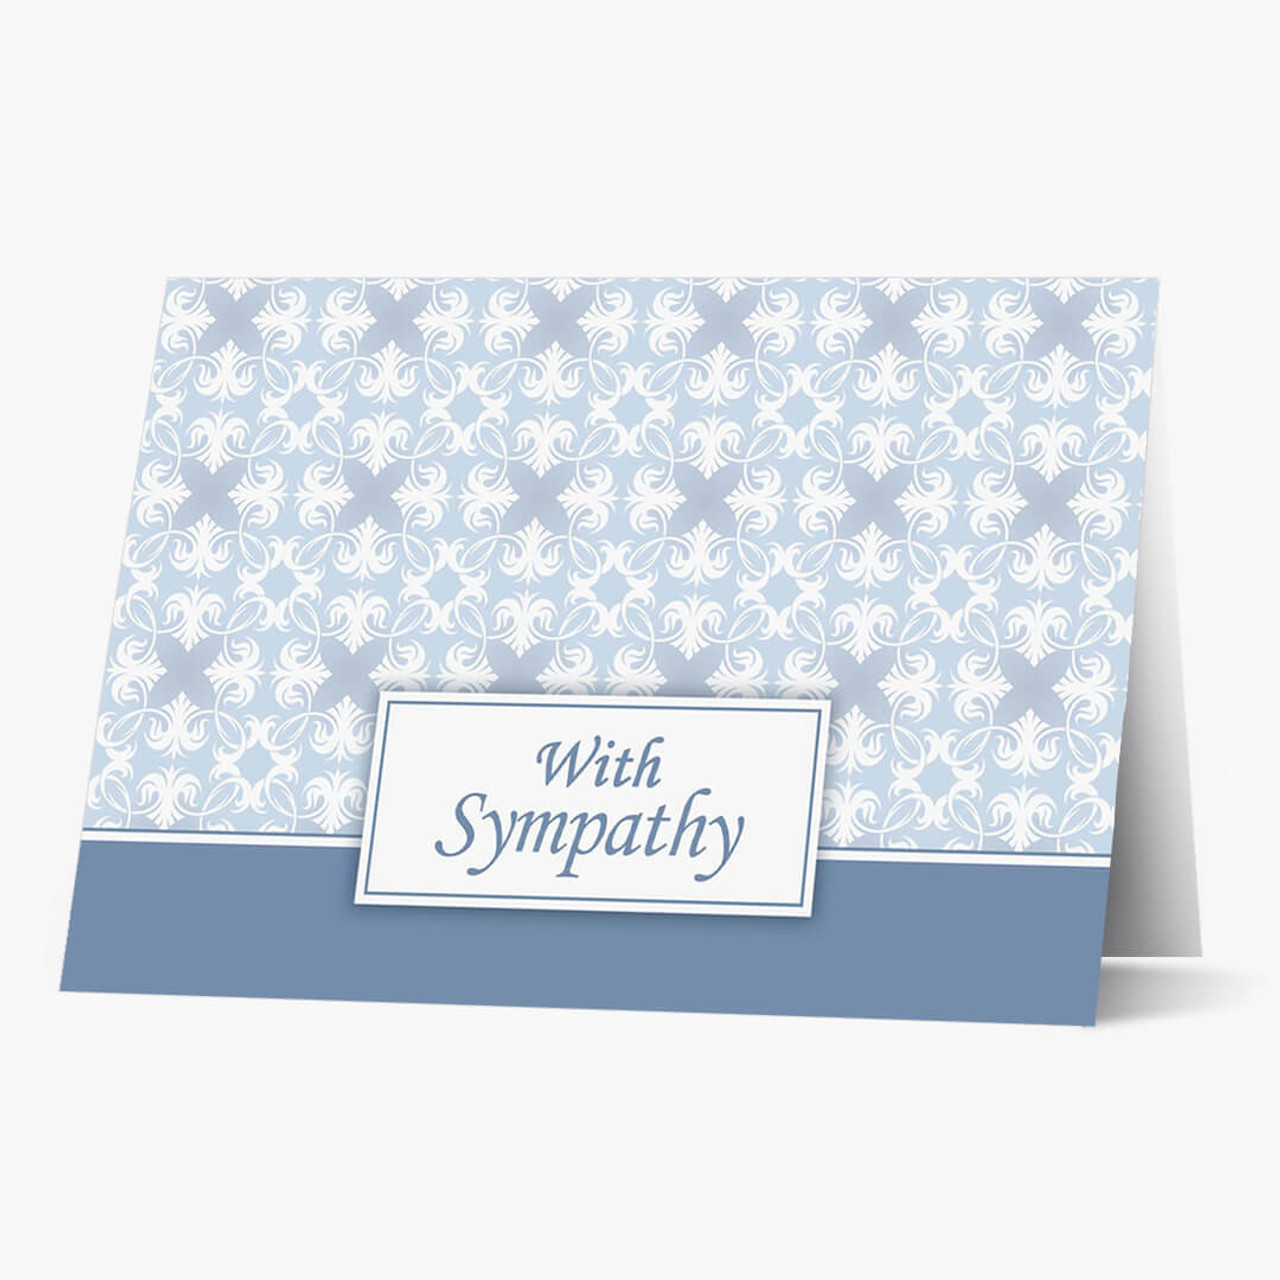 Simply Stated Sympathy Card